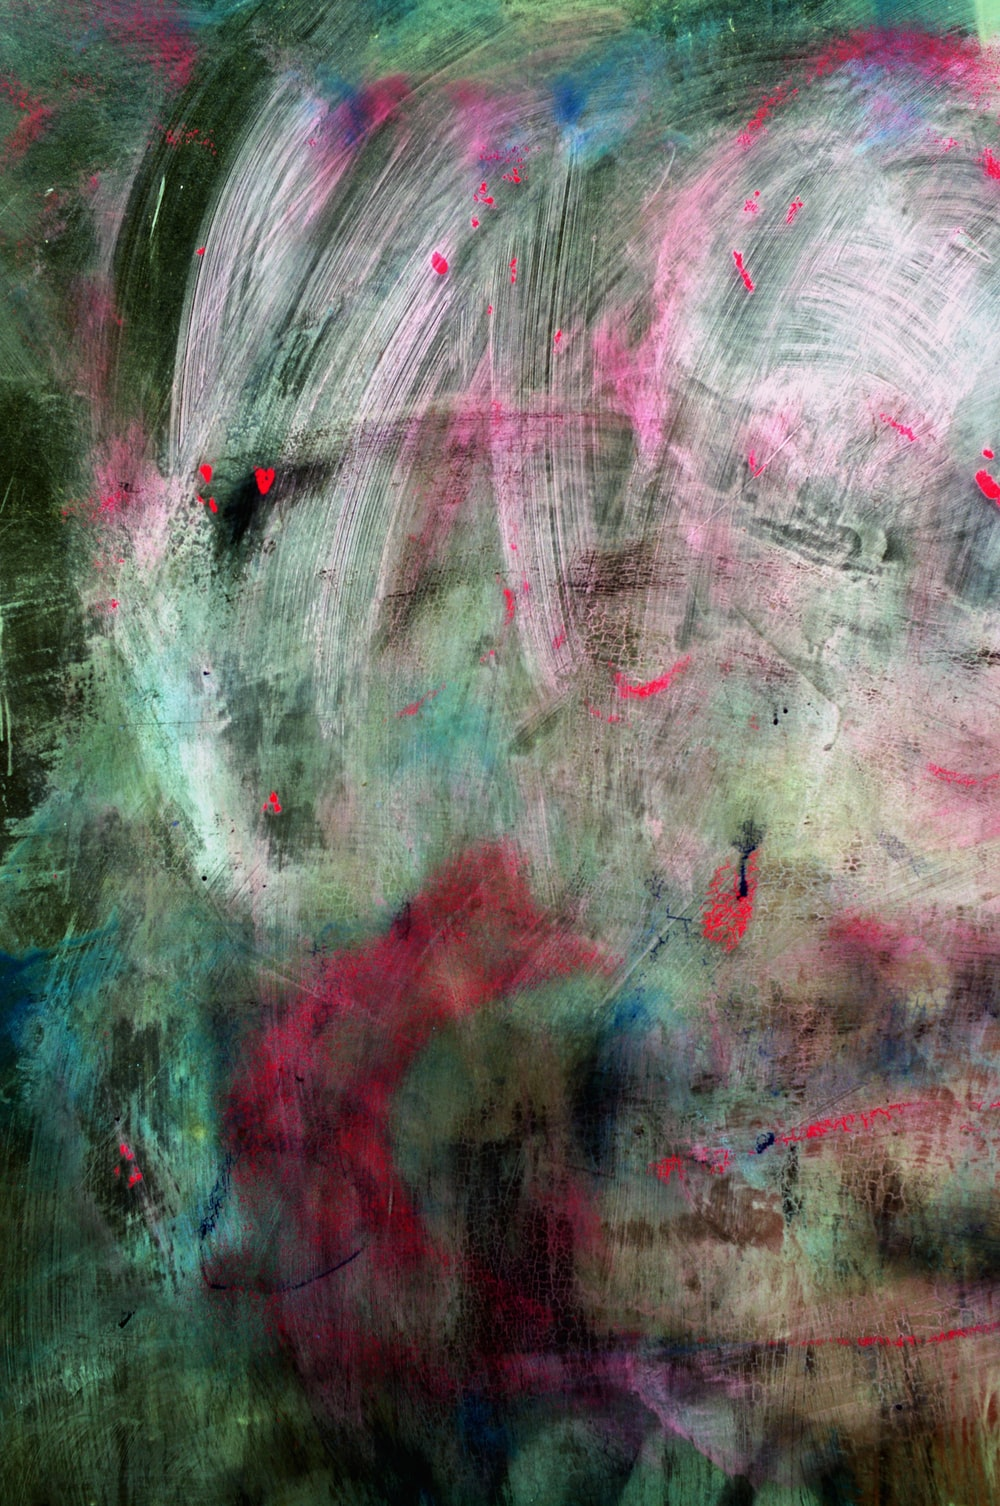 green, pink, and white abstract painting with brush strokes